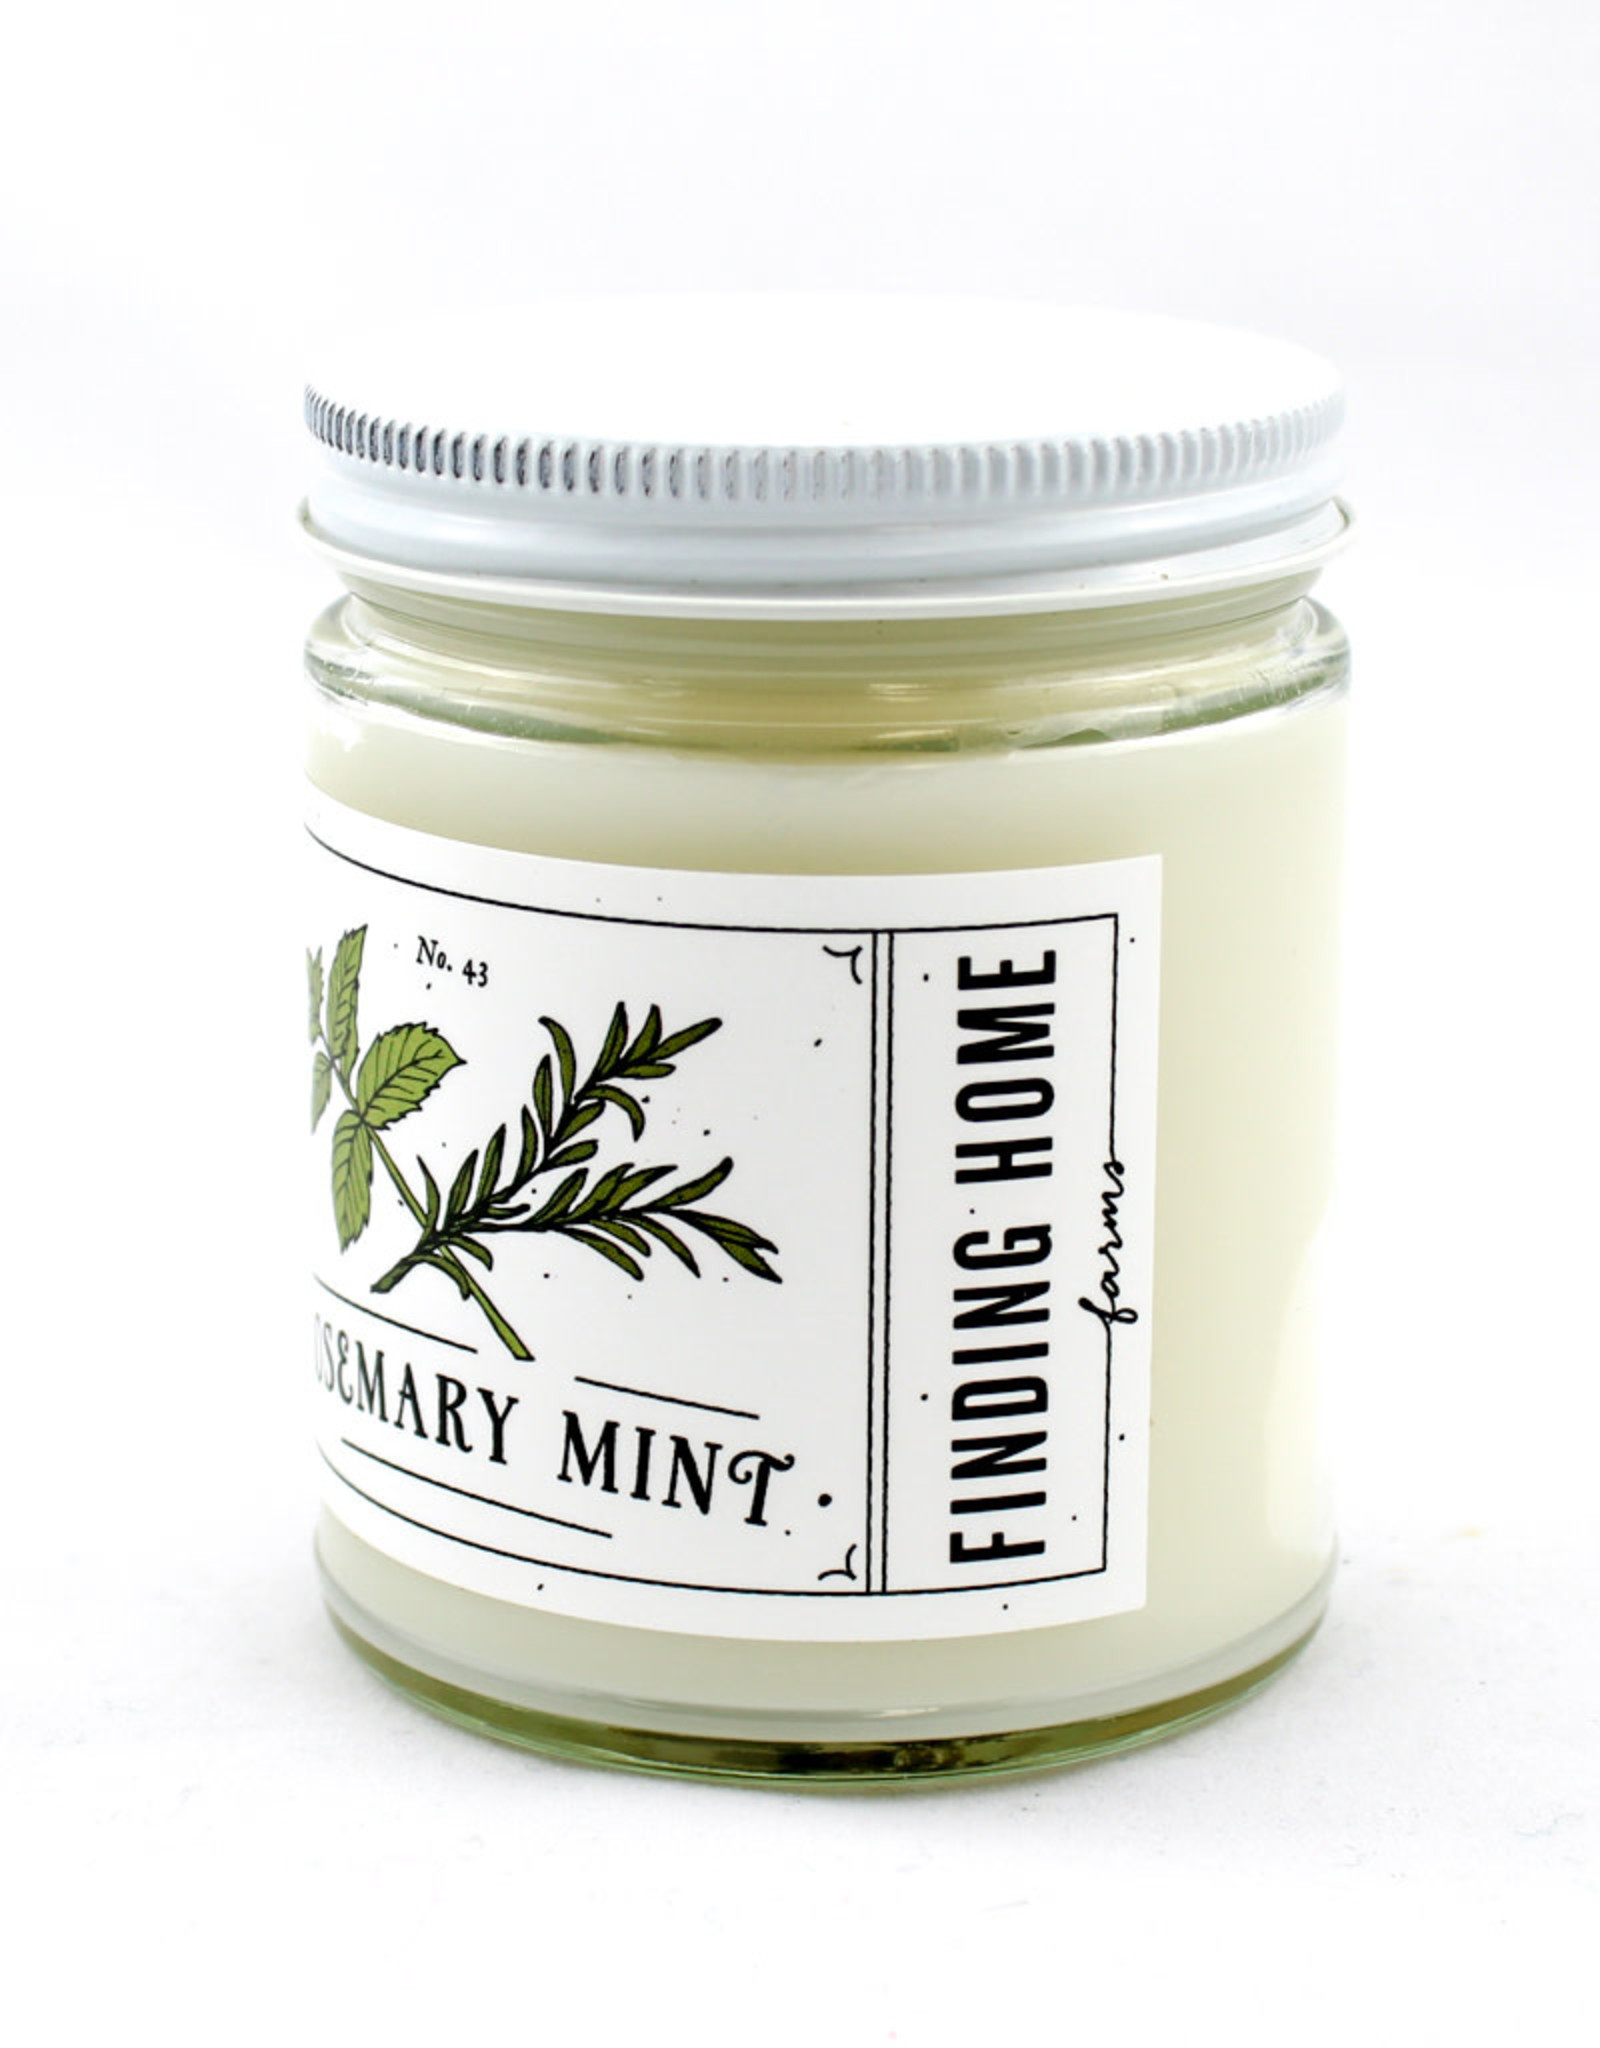 Finding Home Farms Rosemary Mint Candle